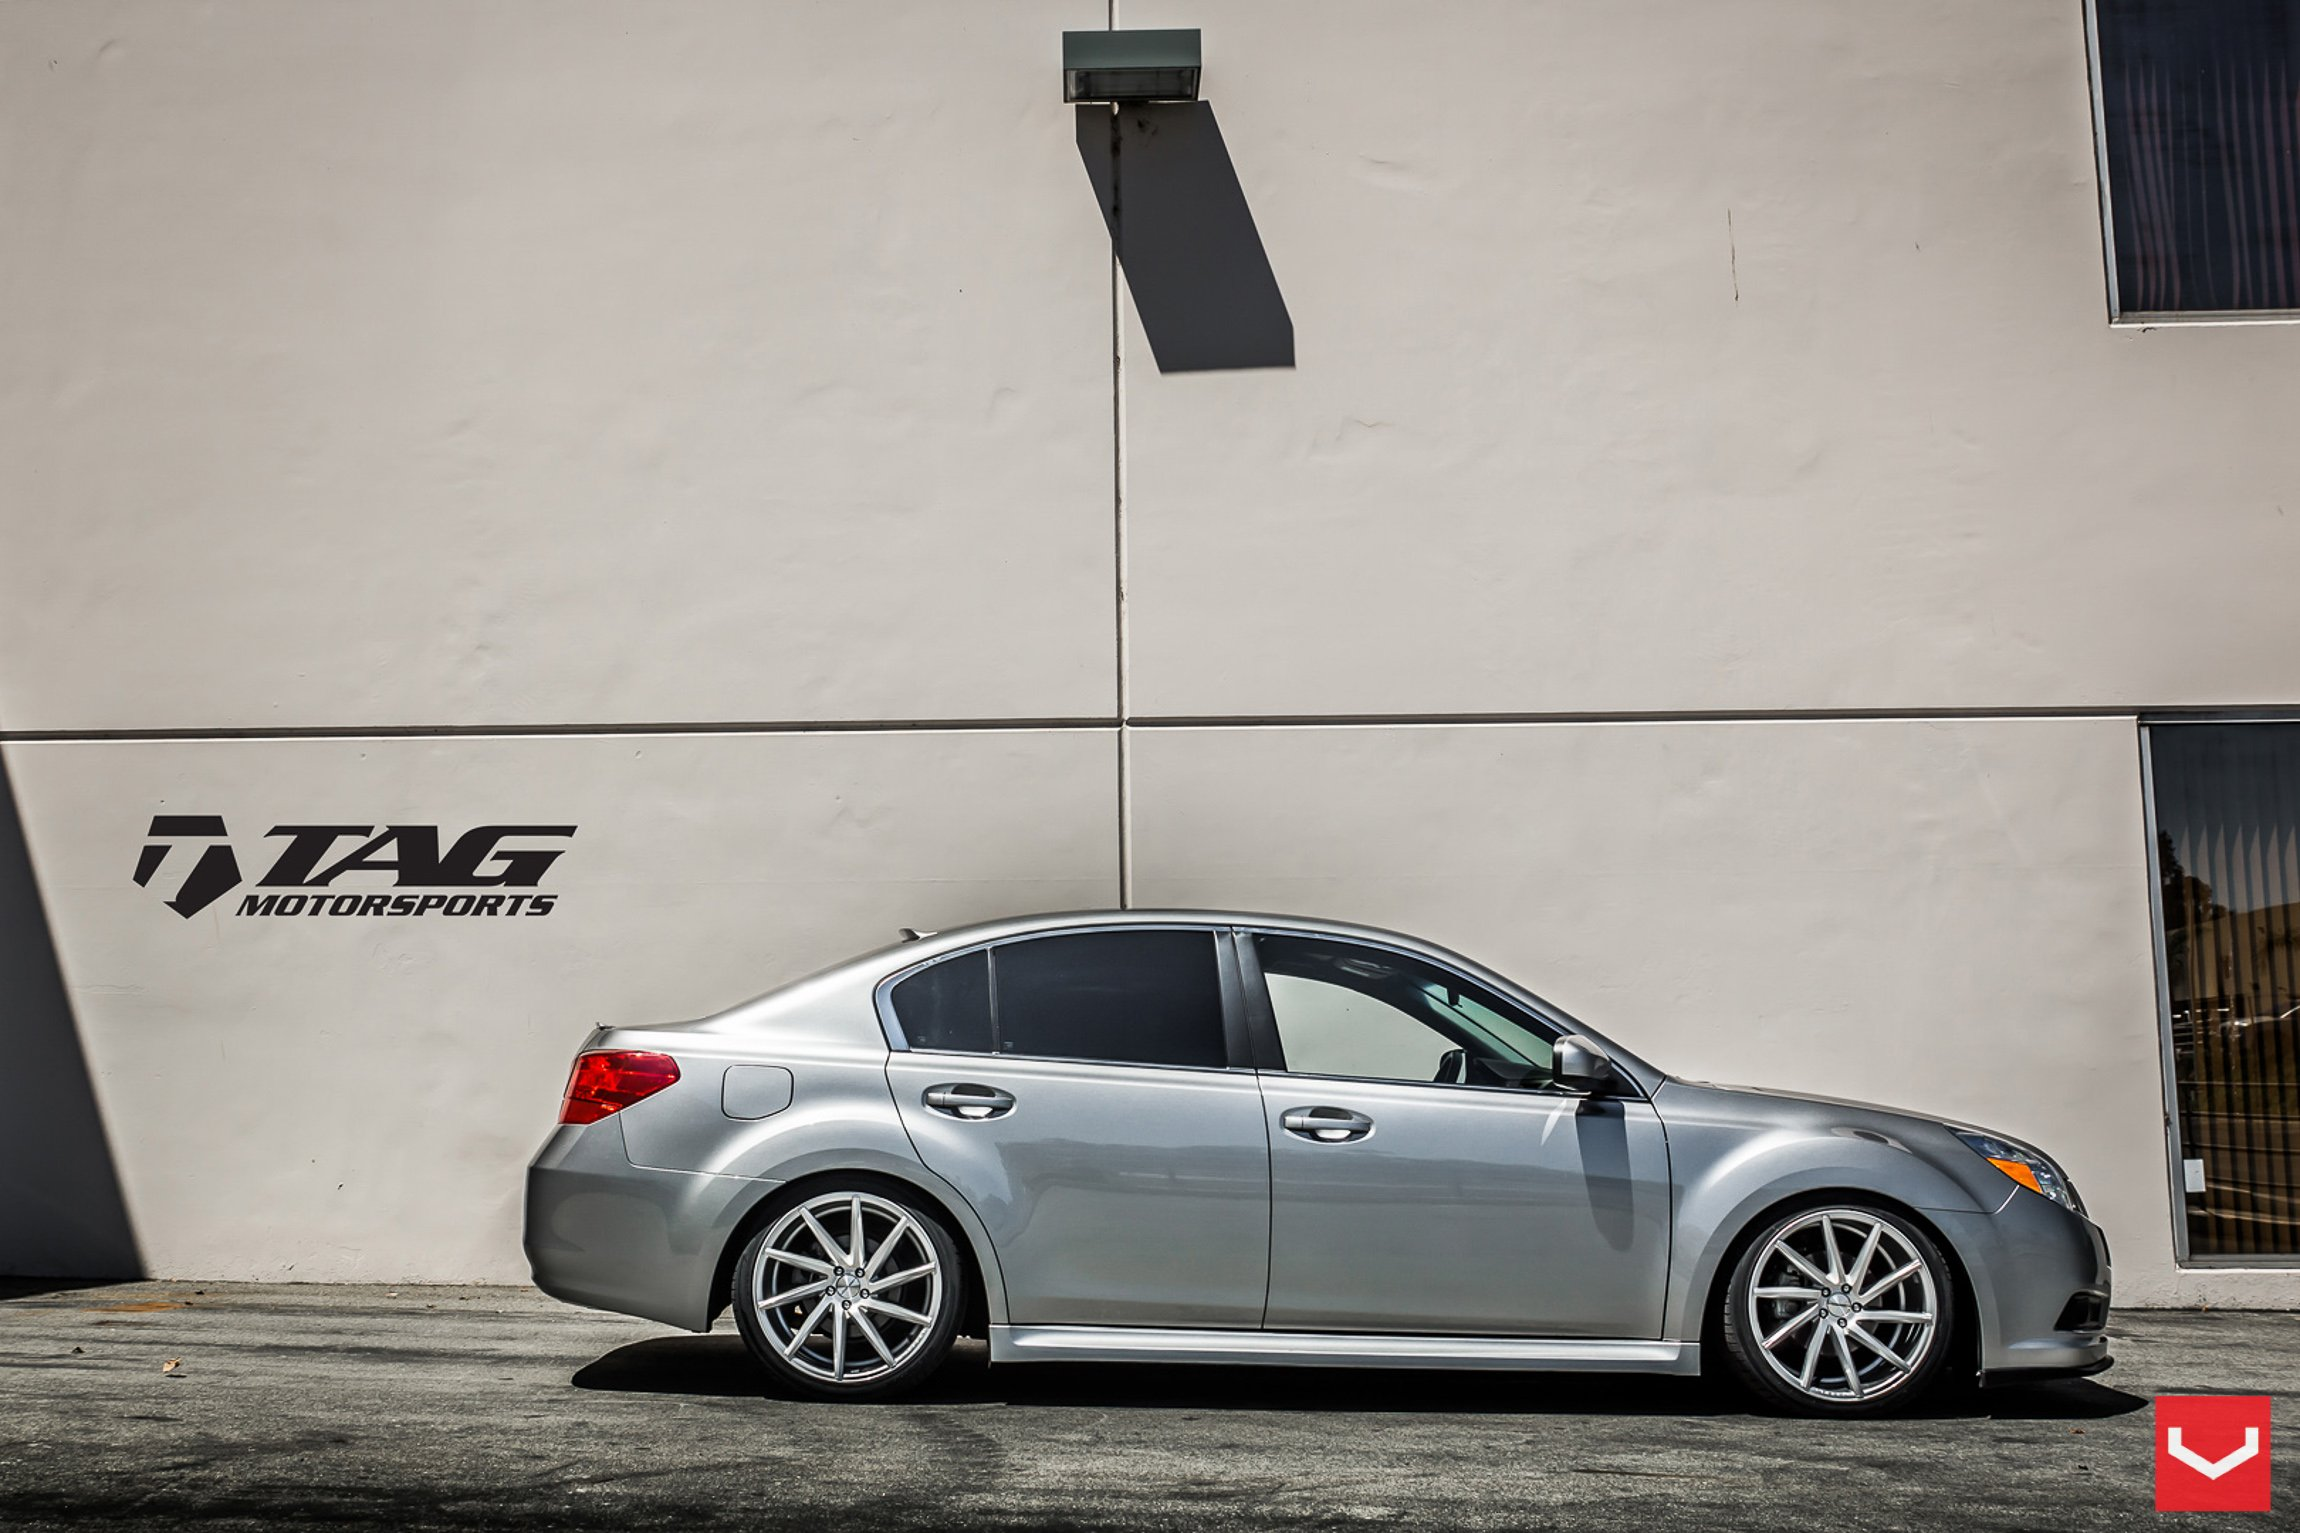 Subaru Legacy - Pictures, posters, news and videos on your pursuit ...